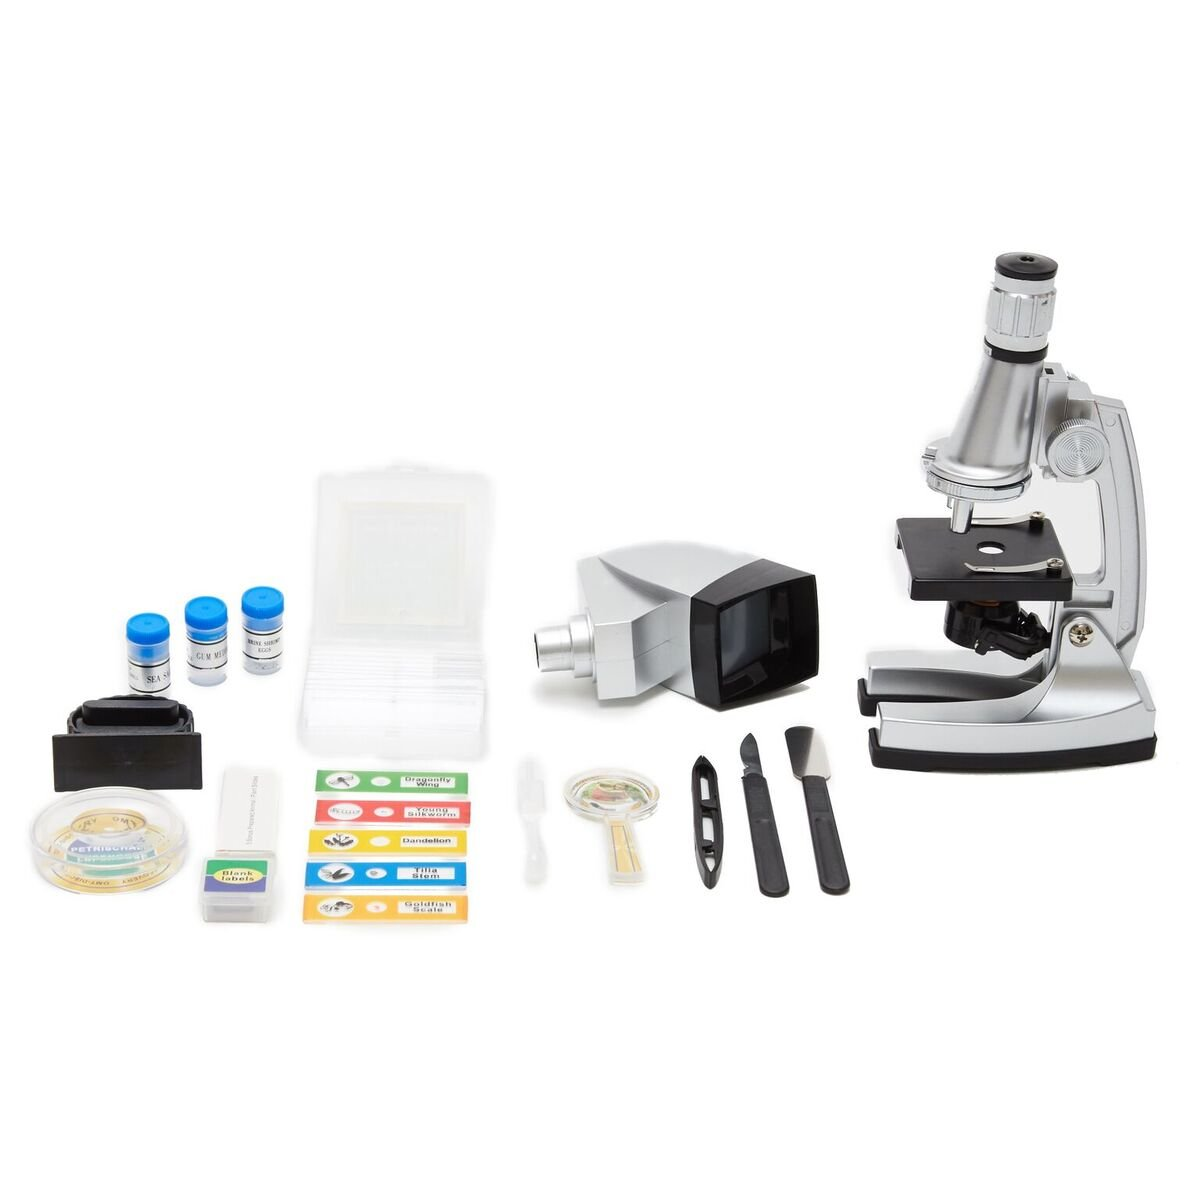 EB Trading LLC Microscope Kit with 6 Magnifications 50x to 1200x, Includes 37 - Piece Accessory, Smartphone Adapter, Handy Storage Case (5 Bonus Animal/Plant Sides) (37 - Piece Accessory Set ONLY) by EB Trading LLC